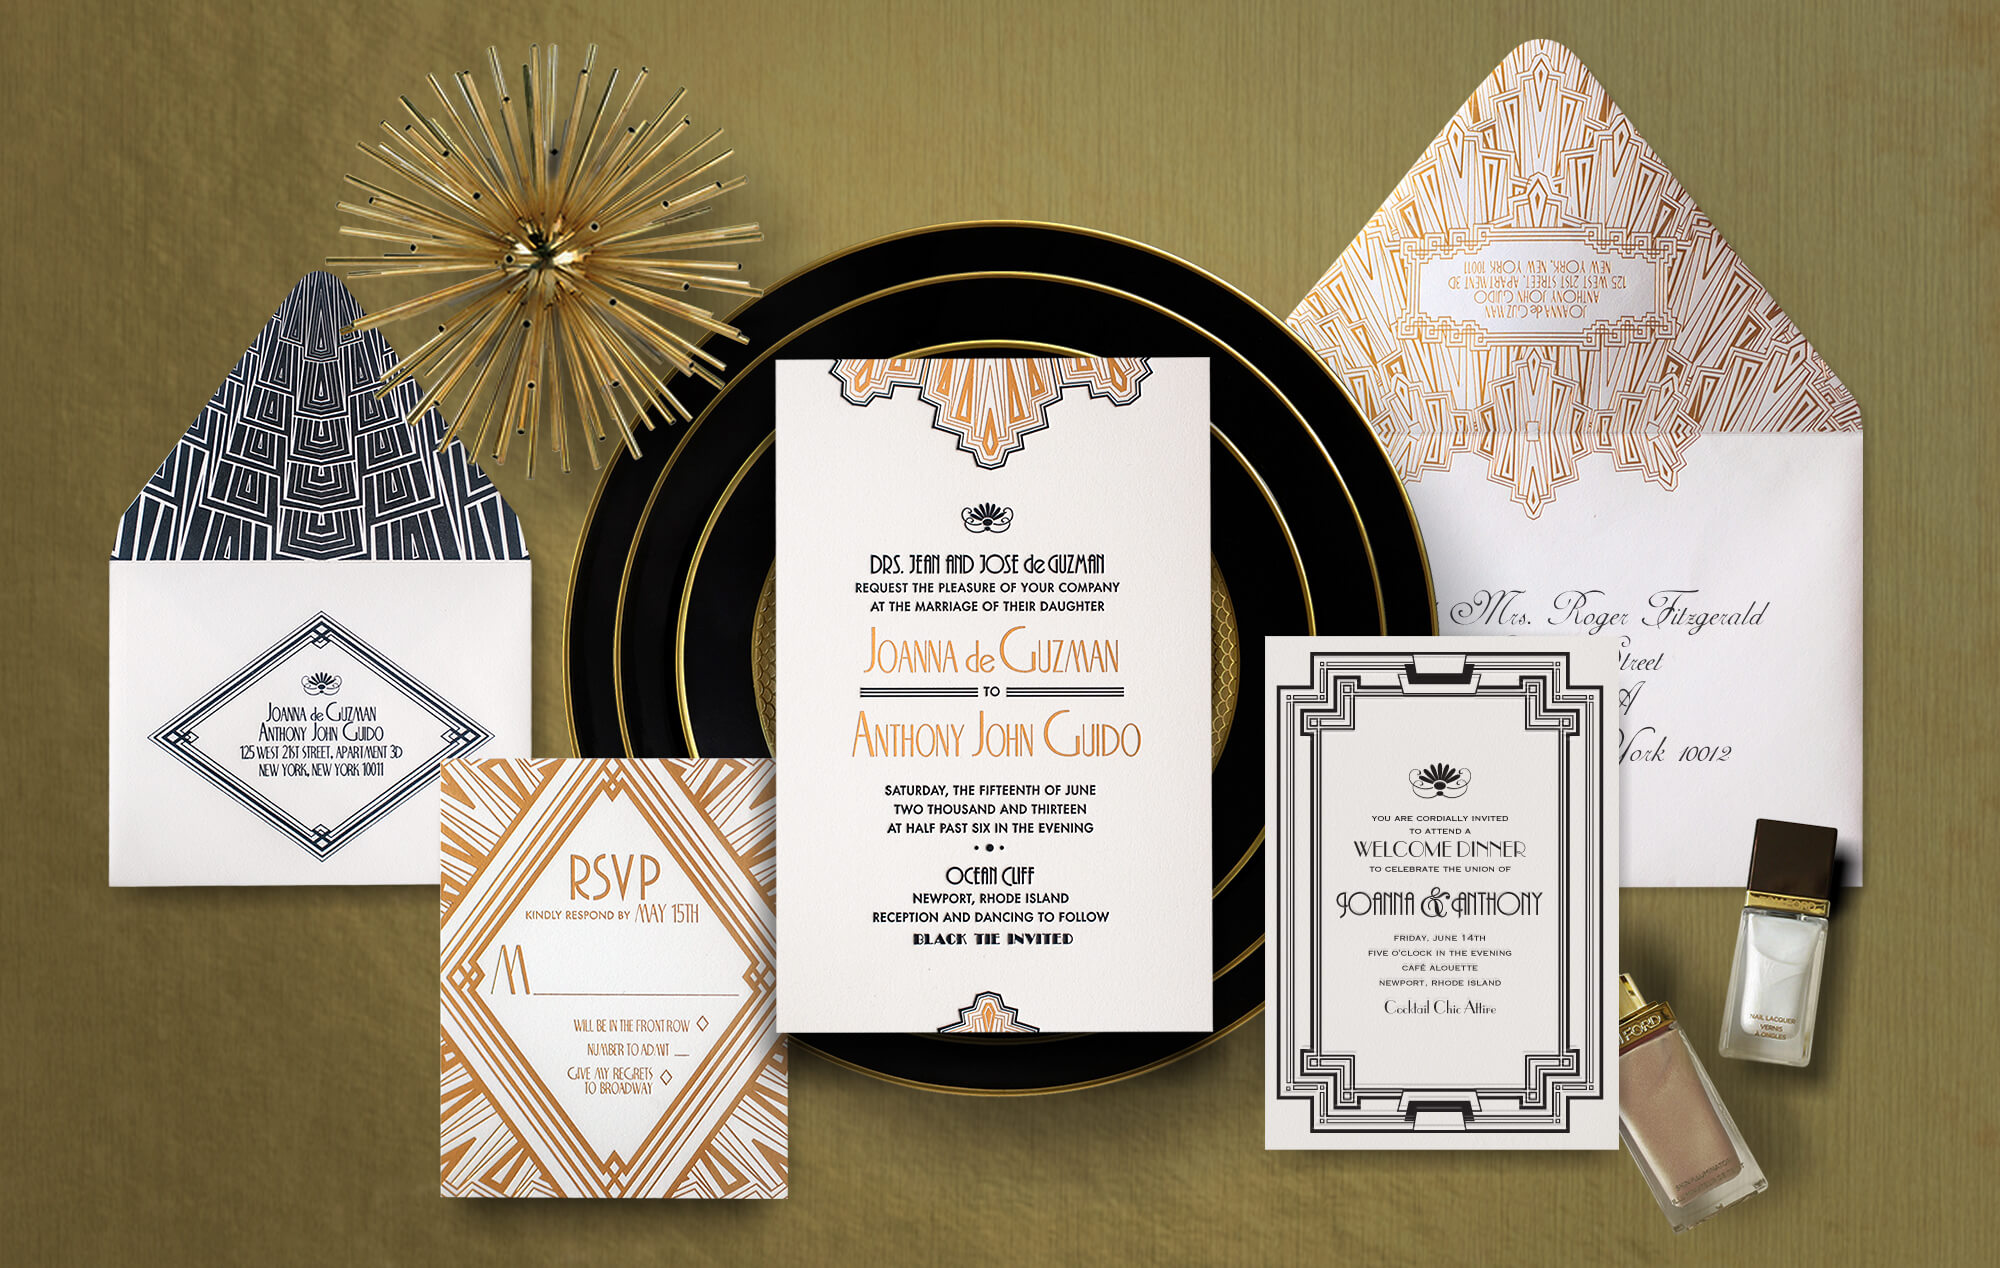 1920s Art Deco wedding invitation